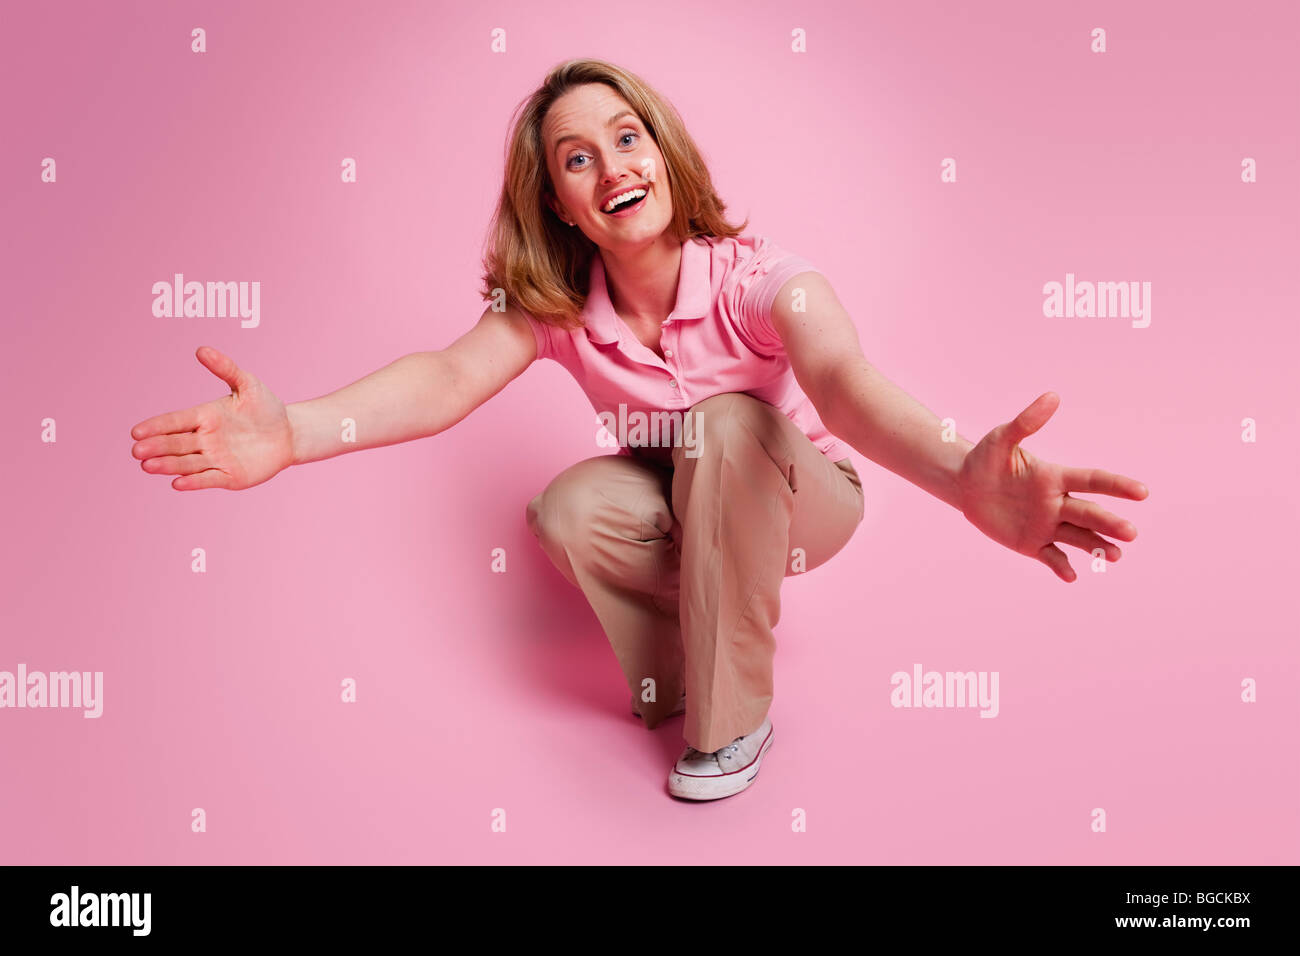 Crouching woman with outstretched open arms on pink background Stock Photo